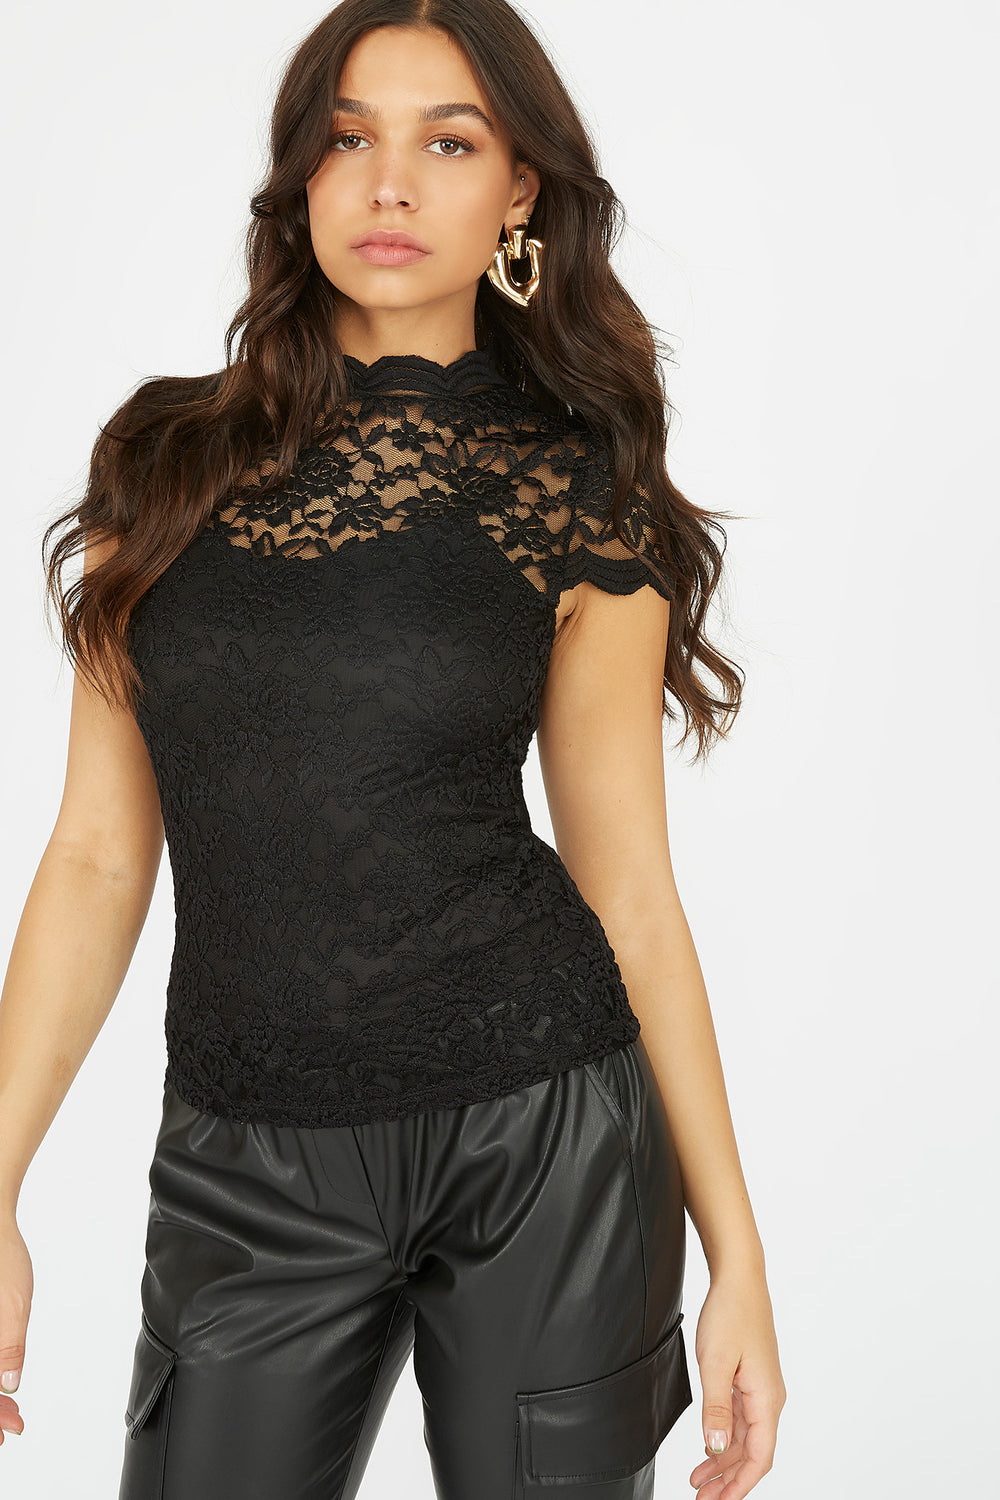 Lace Scallop Mock Neck Short Sleeve Top Black